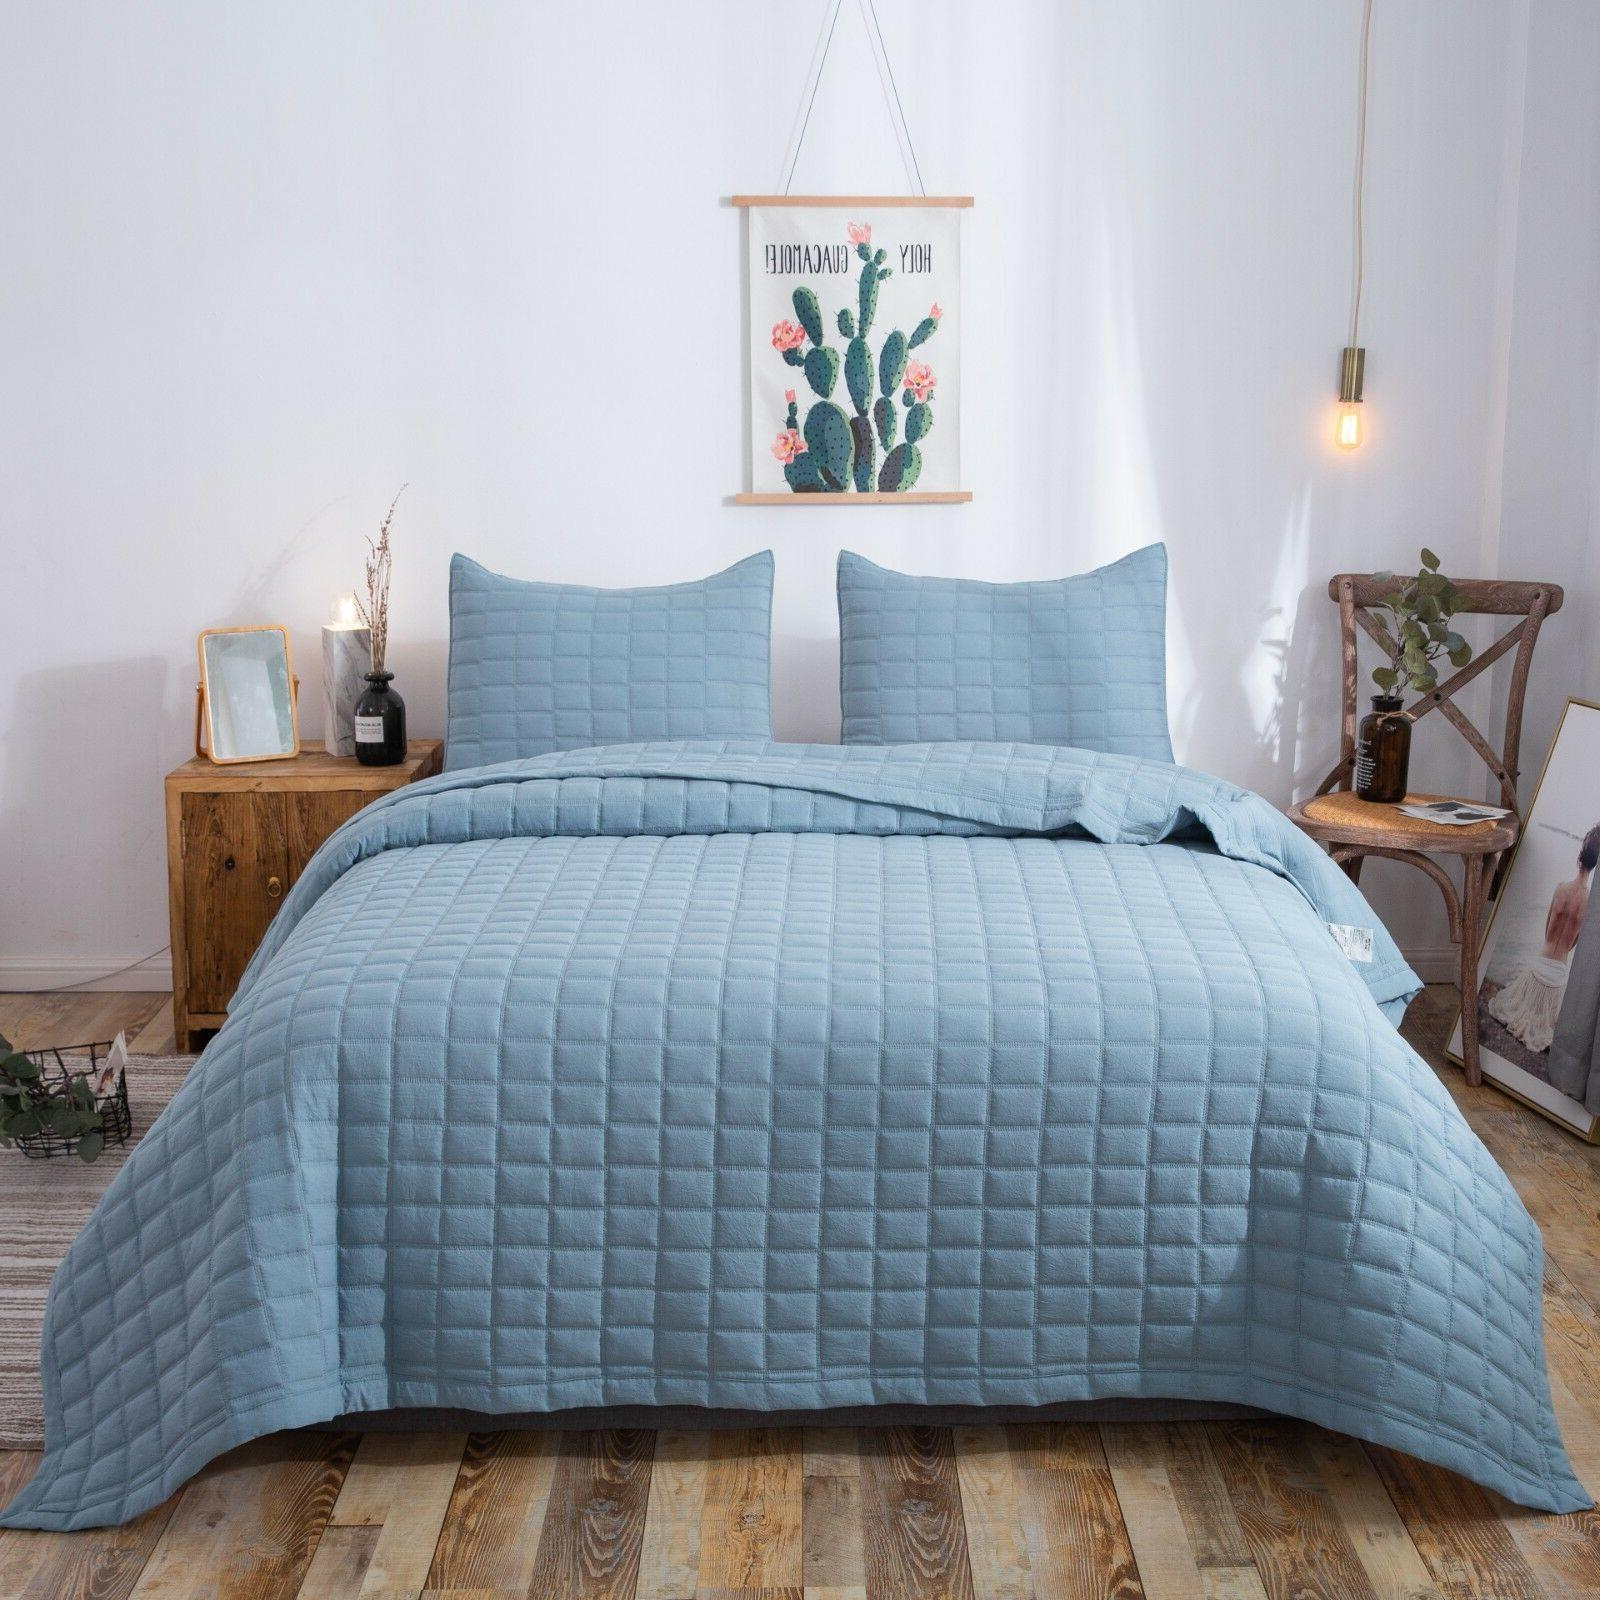 premium stone washed quilt set detailed stitching